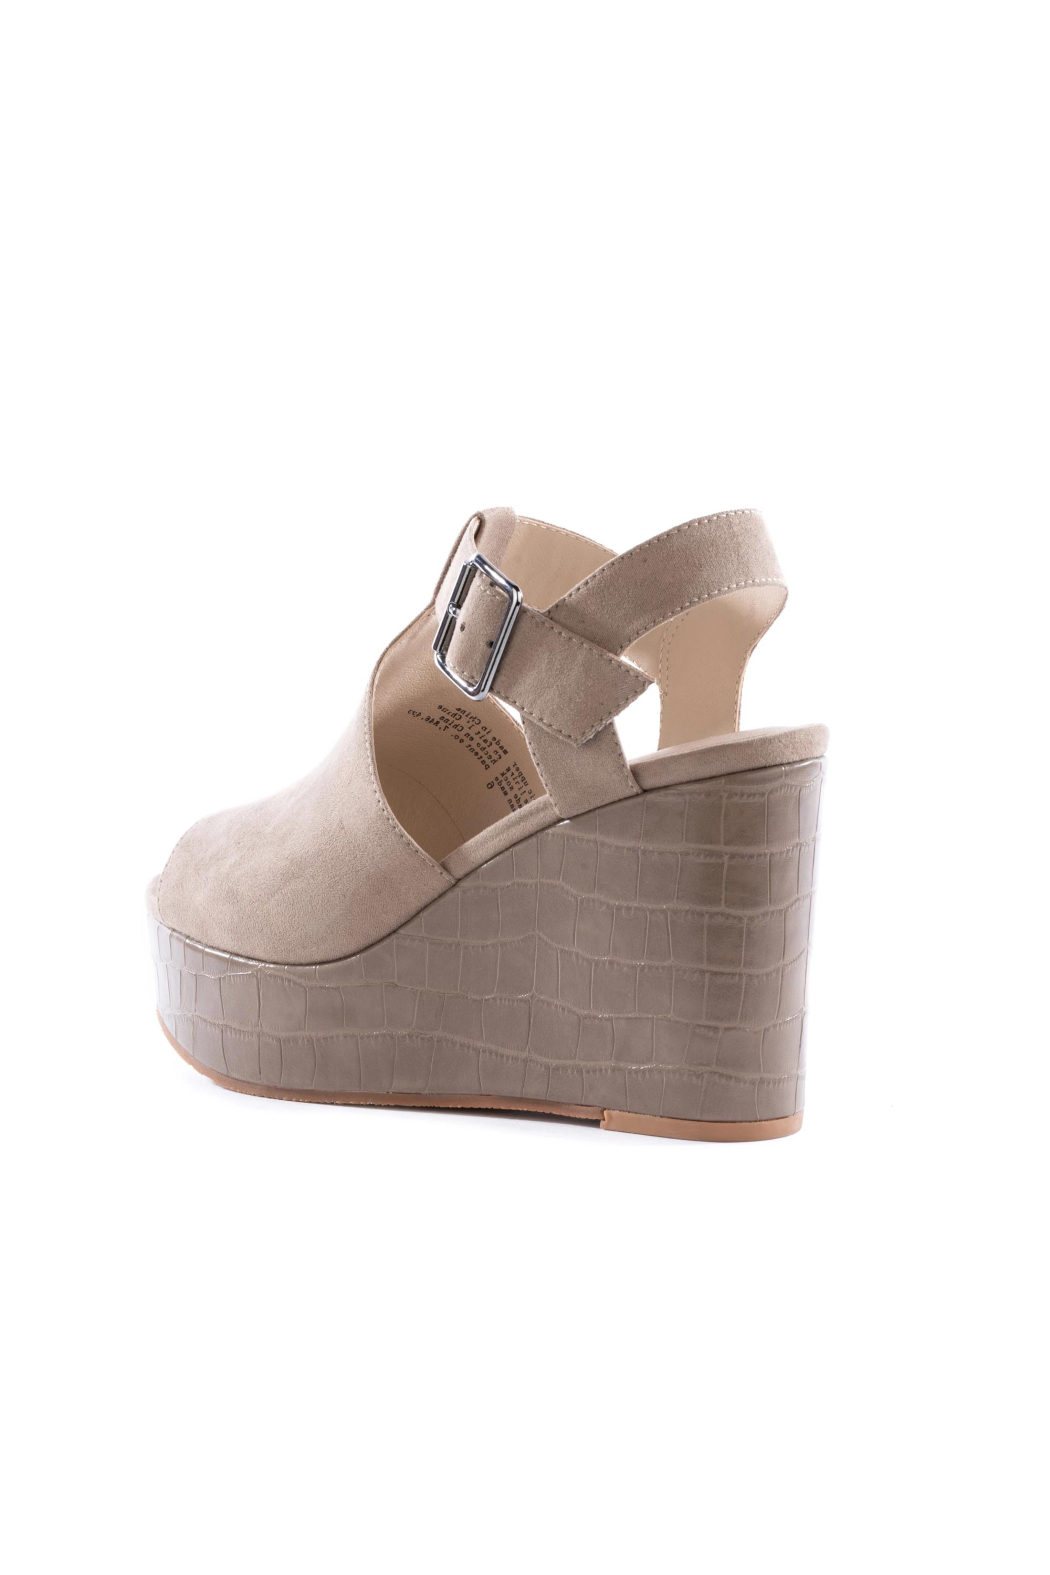 BC Footwear Here We Go Wedge - Side Cropped Image